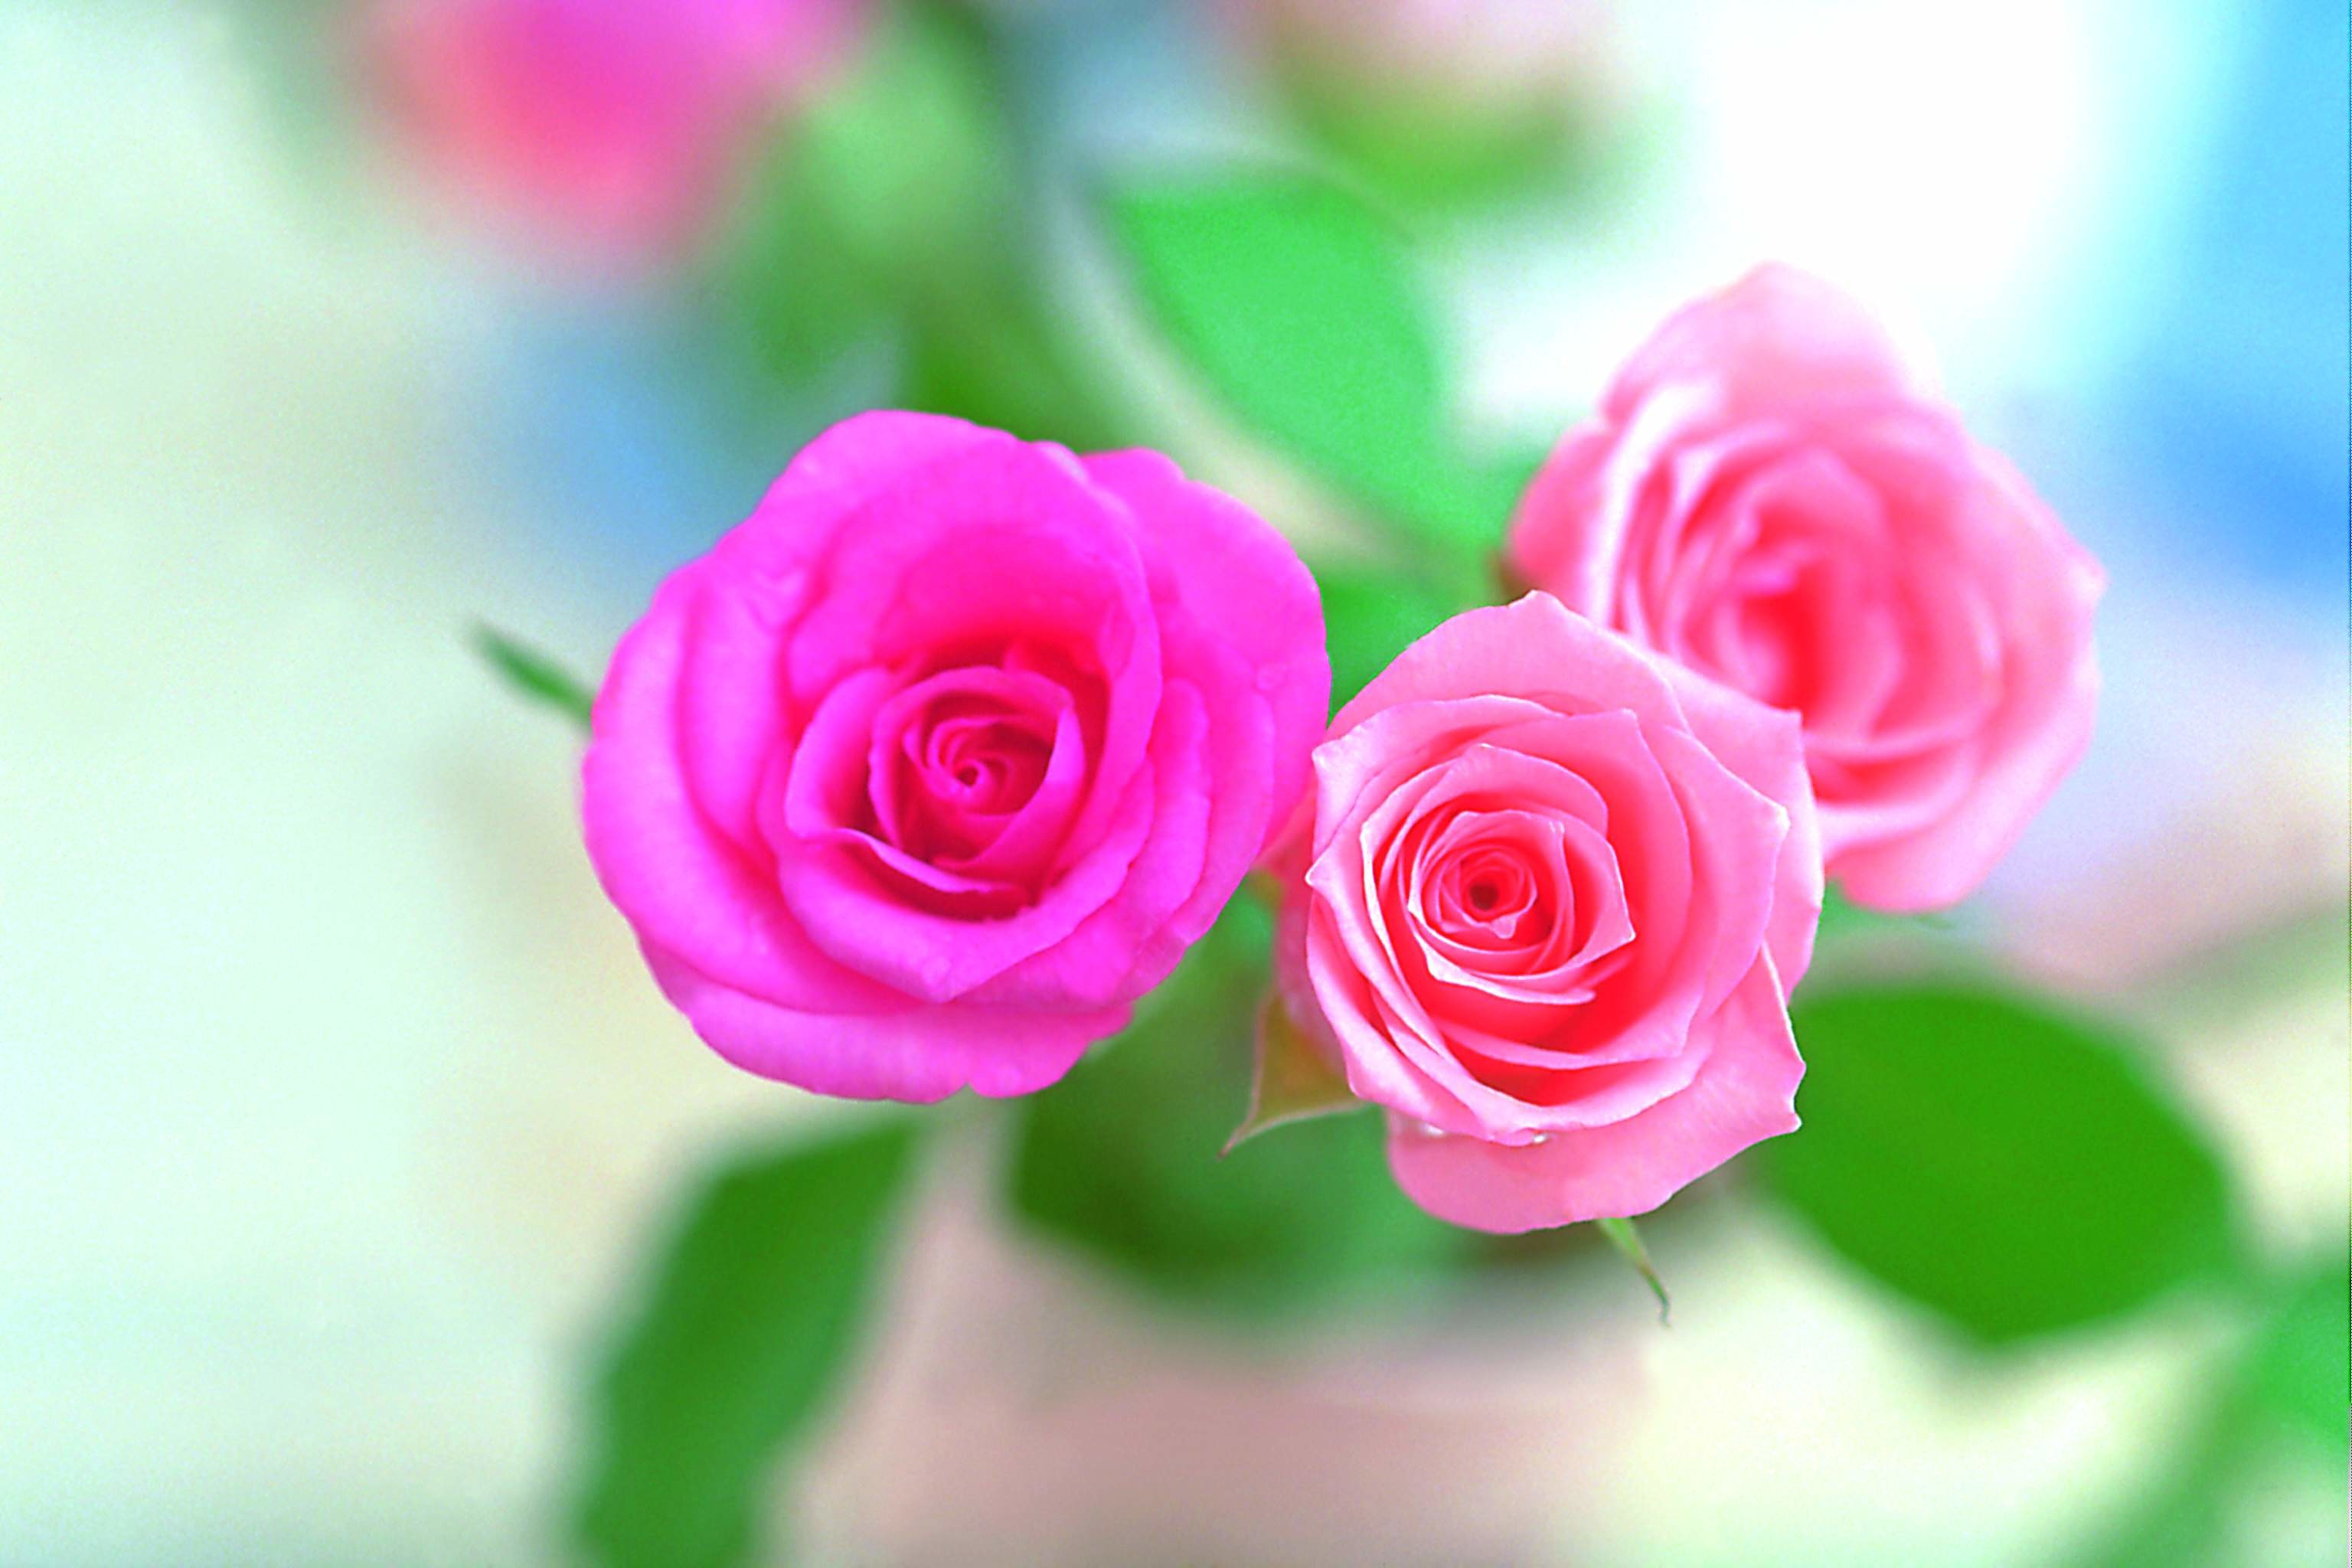 Rose Flowers Images wallpapers (120 Wallpapers) - HD Wallpapers